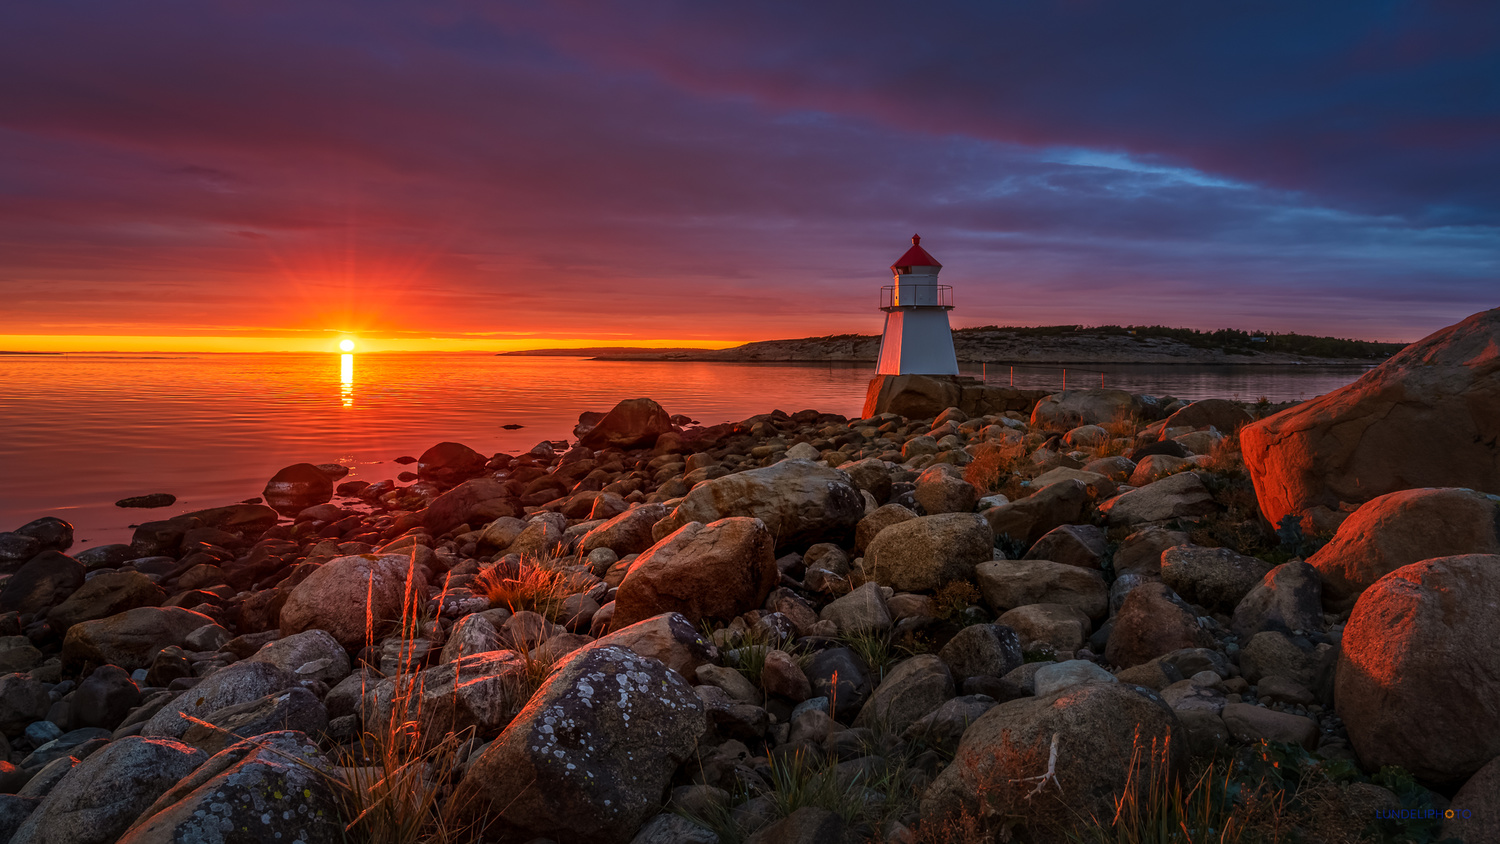 The lighthouse by the waters edge by Hans Jørgen Lindeløff